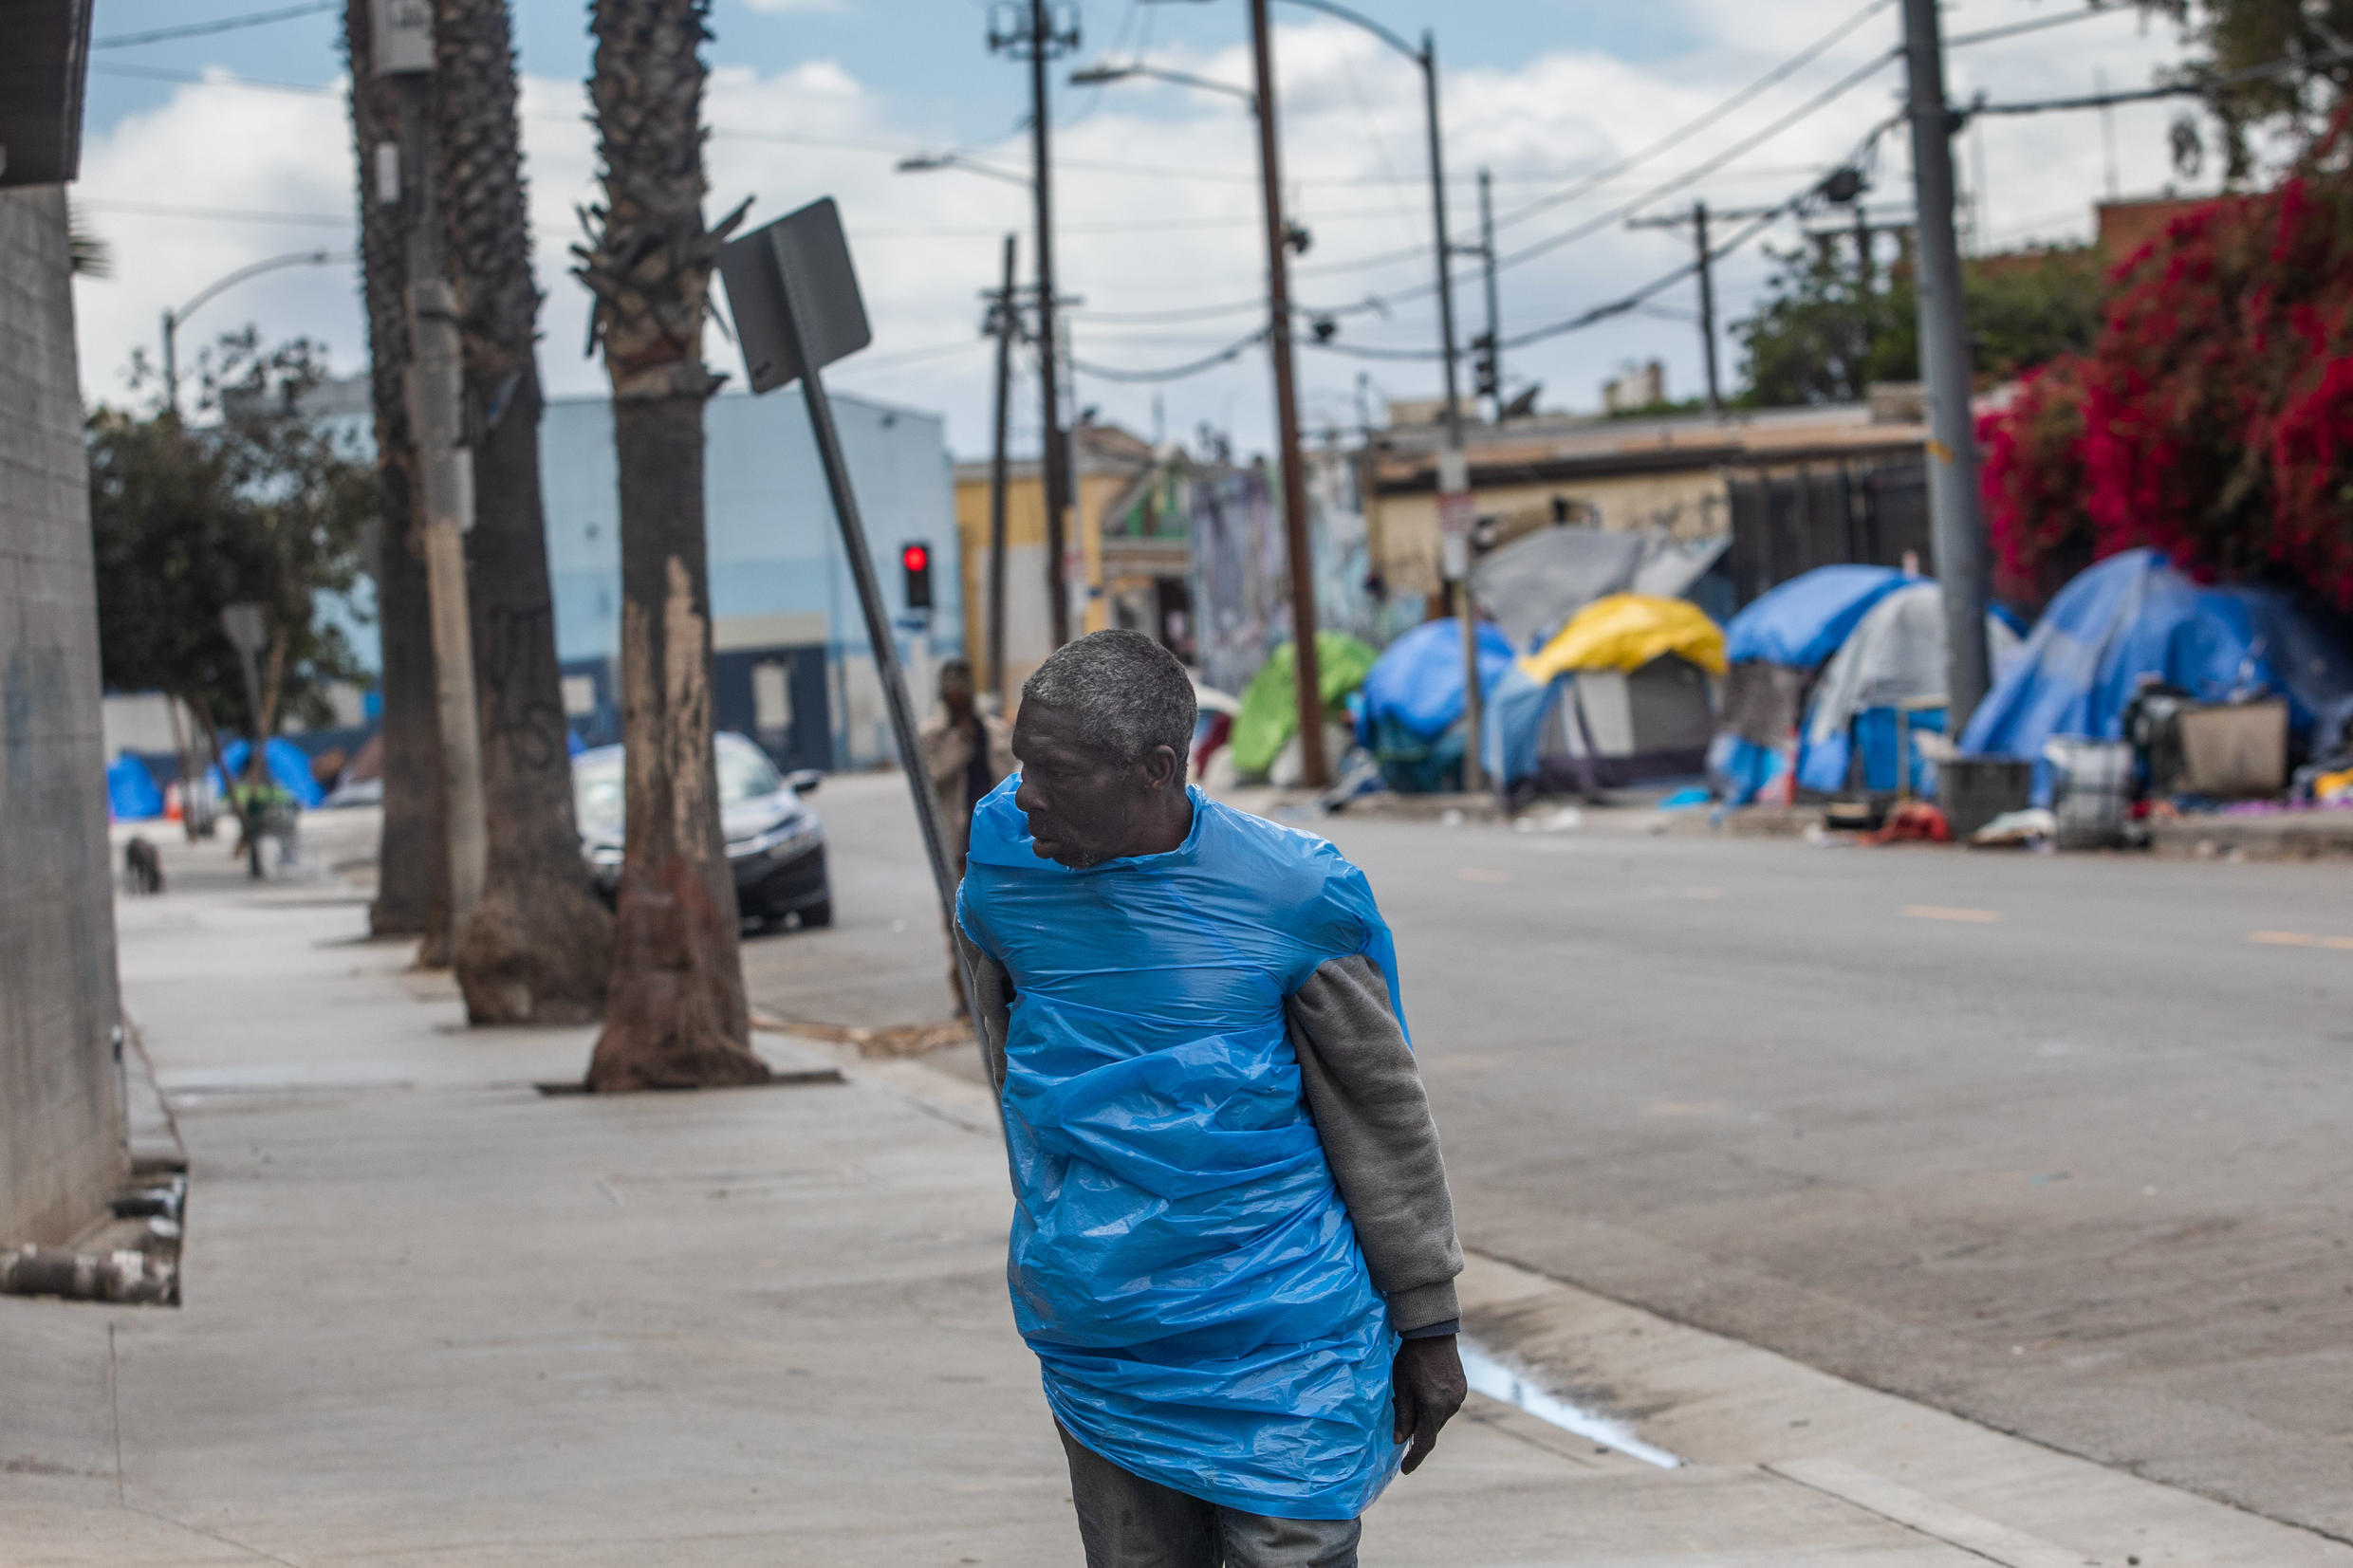 California's homeless population of 150,000 is the largest in the nation, some 60,000 of whom live in Los Angeles County - like this man on San Julian Street in the Skid Row area in downtown Los Angeles